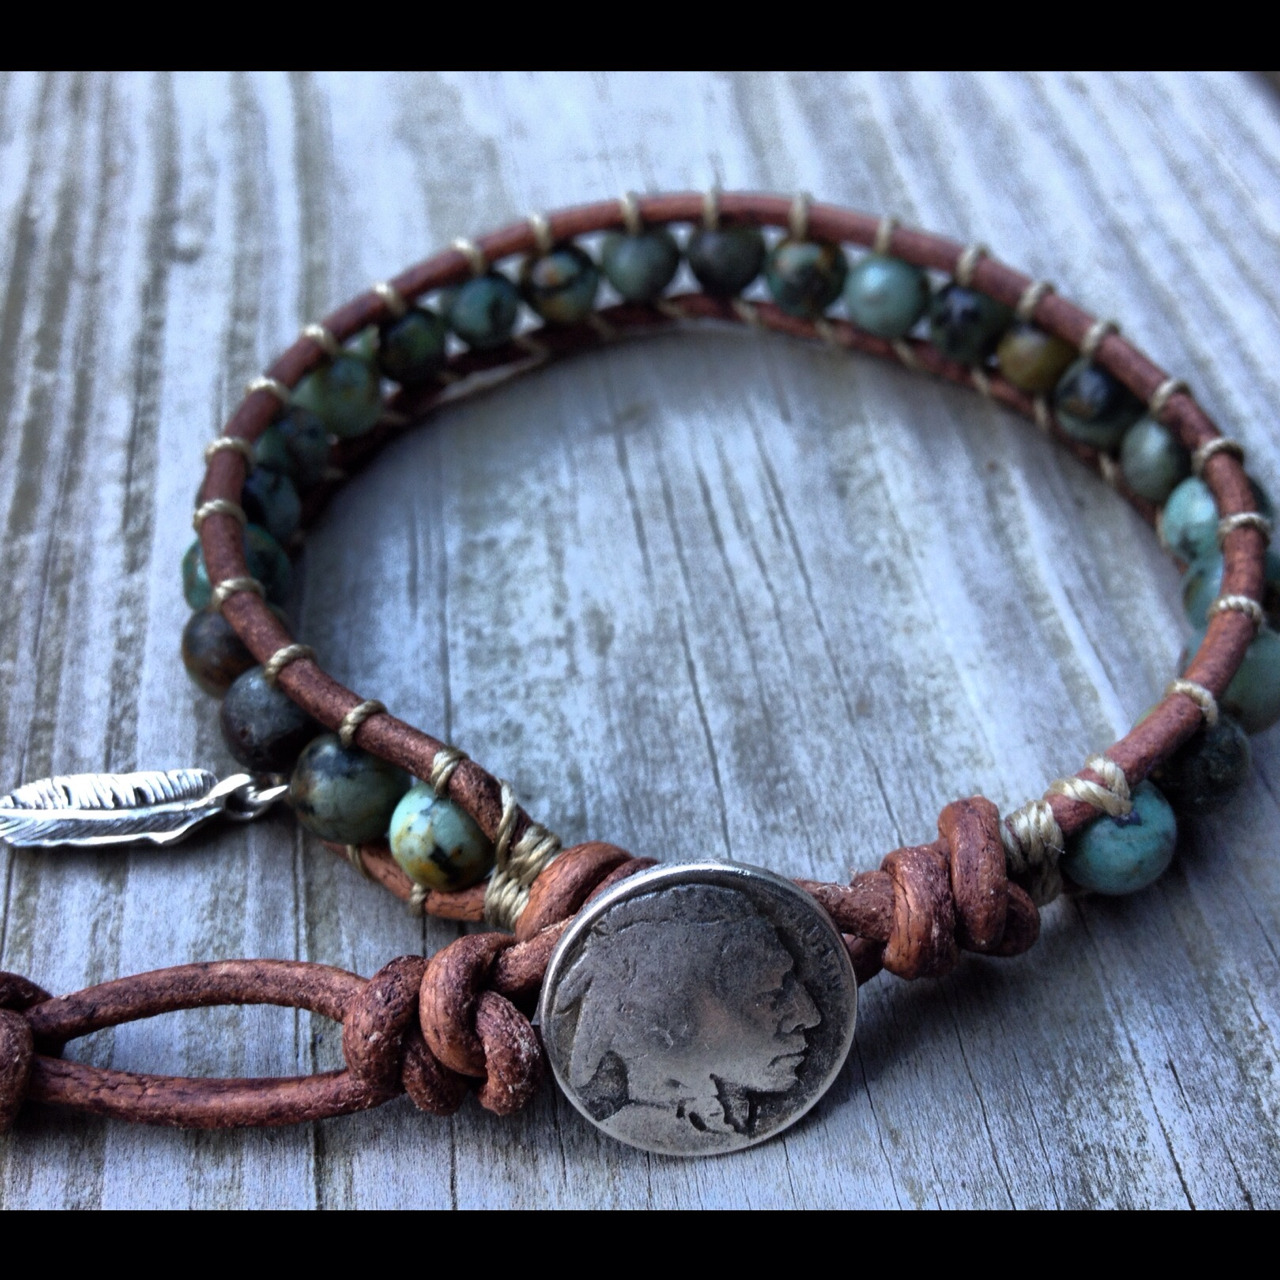 Native American Turquoise bracelet with sterling silver charm. Find it at www.designbyance.etsy.com